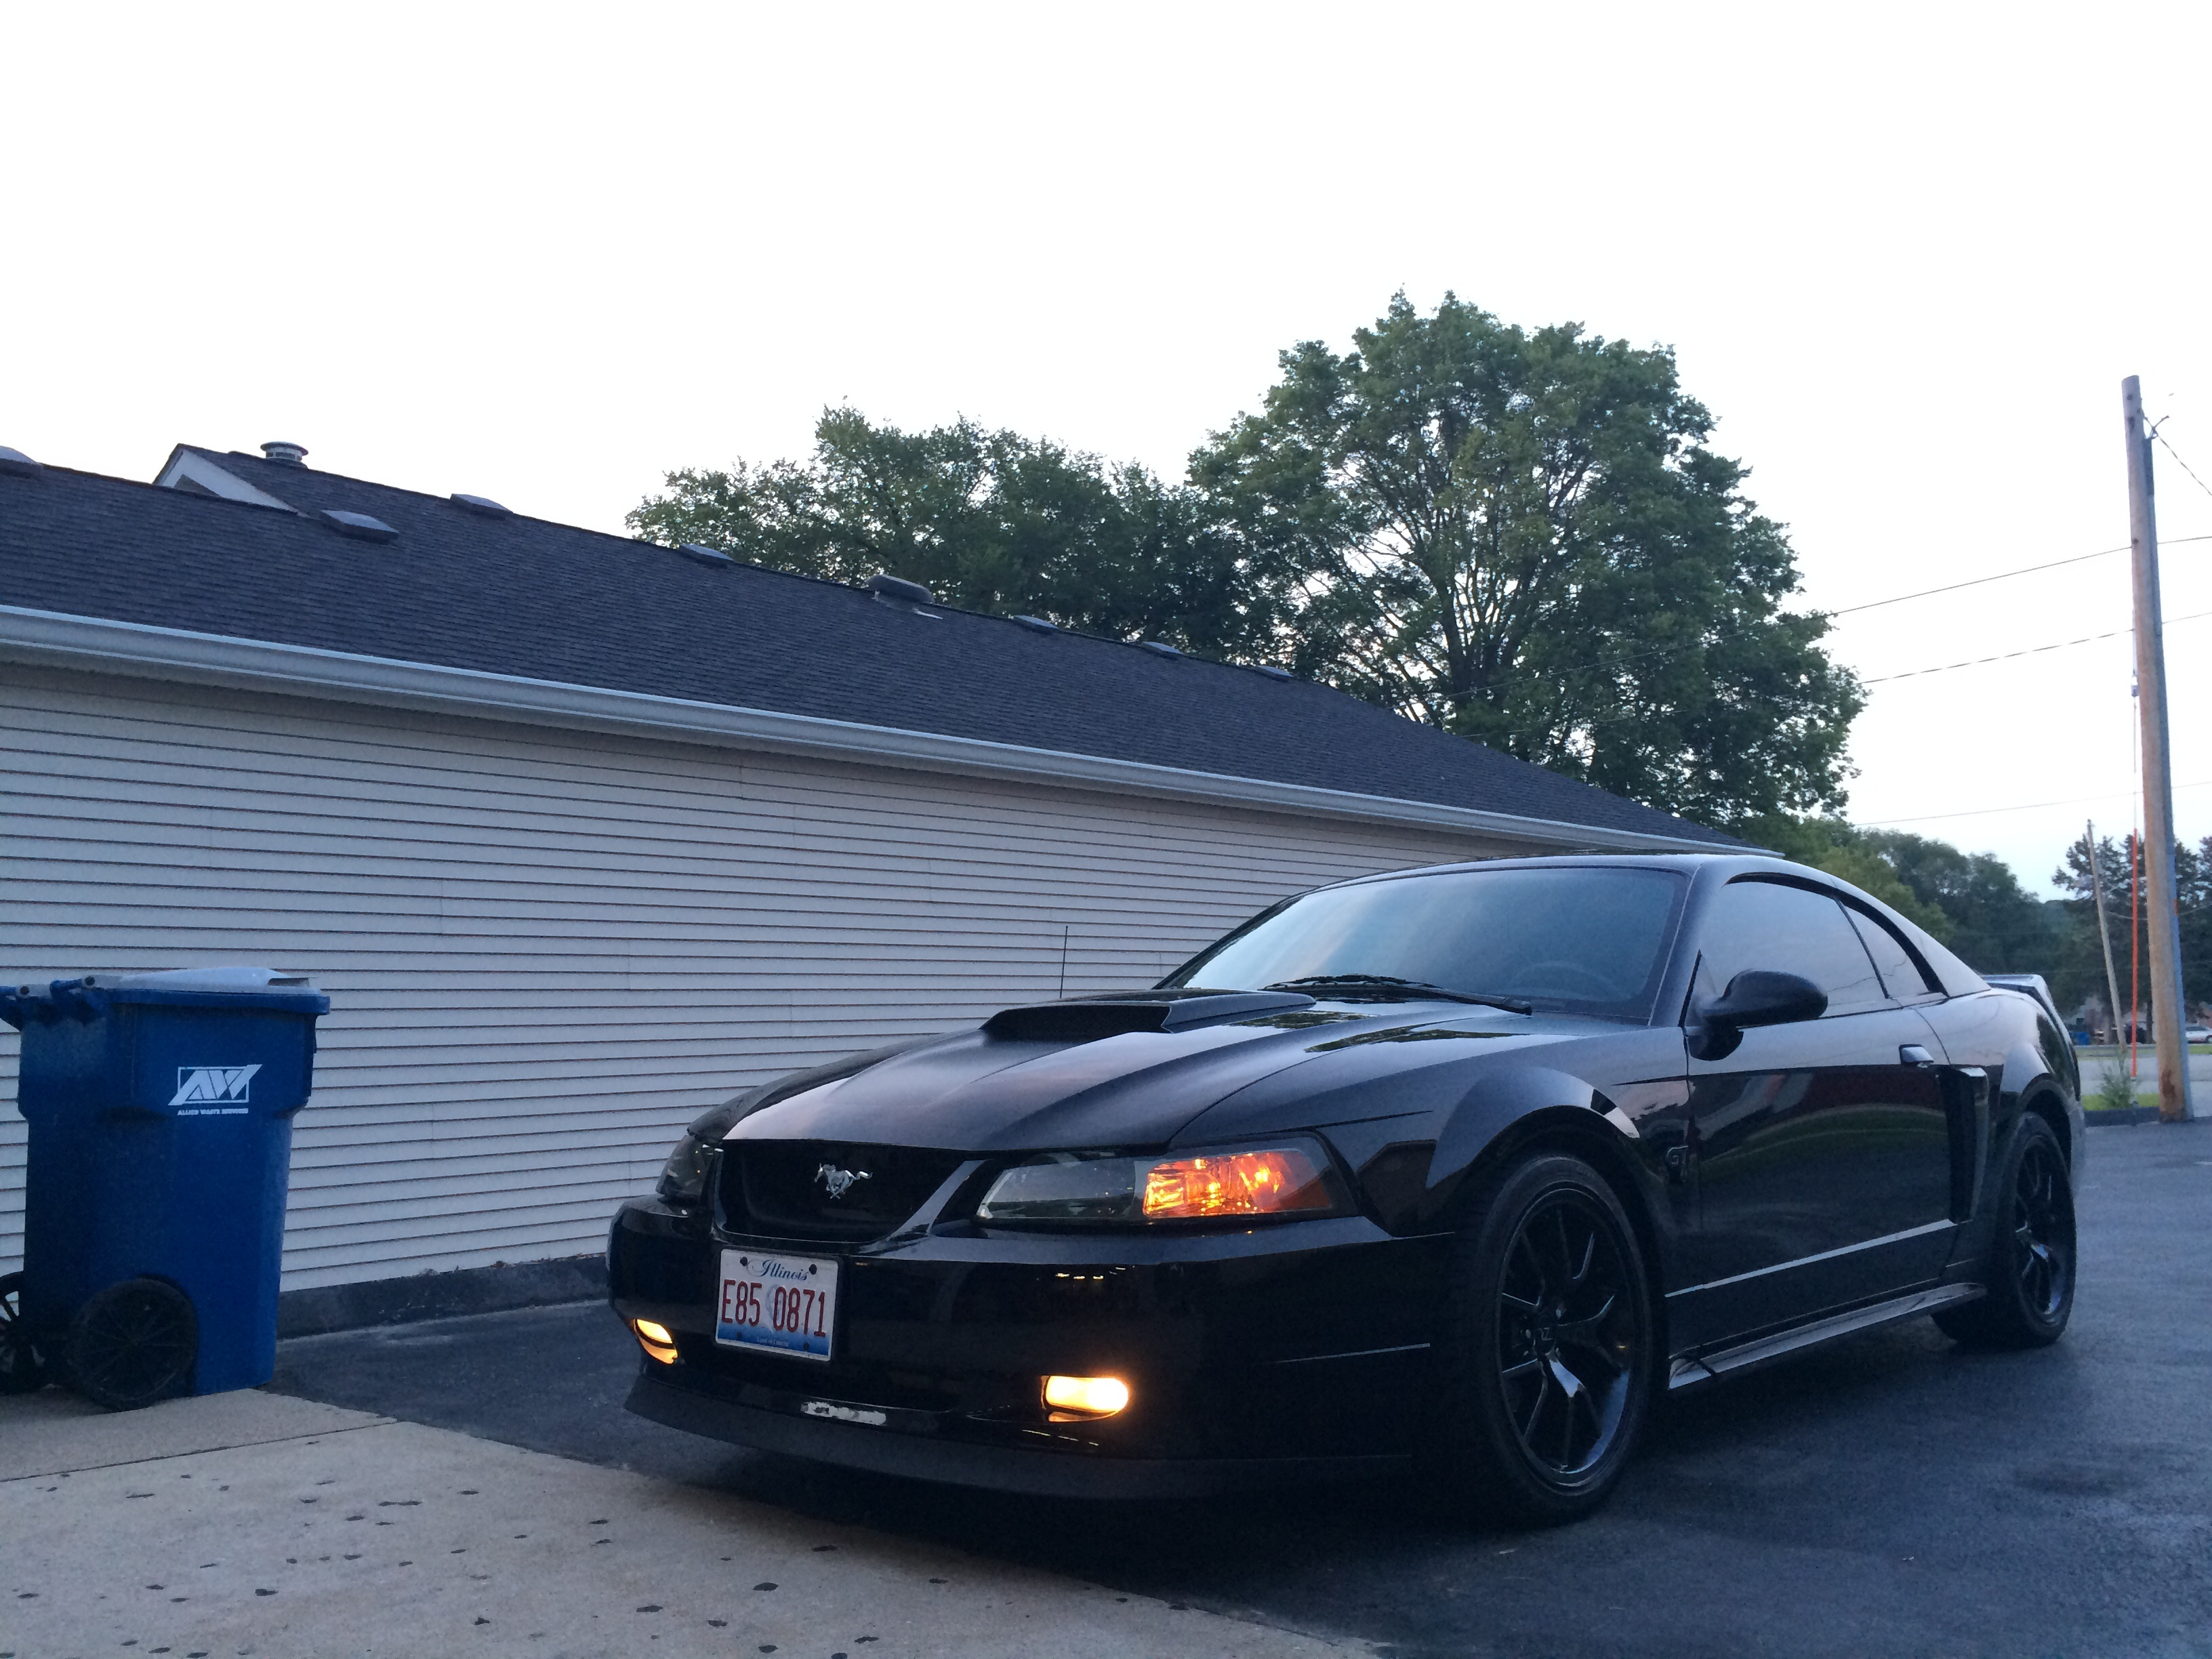 here 39 s my 2002 mustang gt may not be the fastest car in the world but it 39 s all mine and i. Black Bedroom Furniture Sets. Home Design Ideas